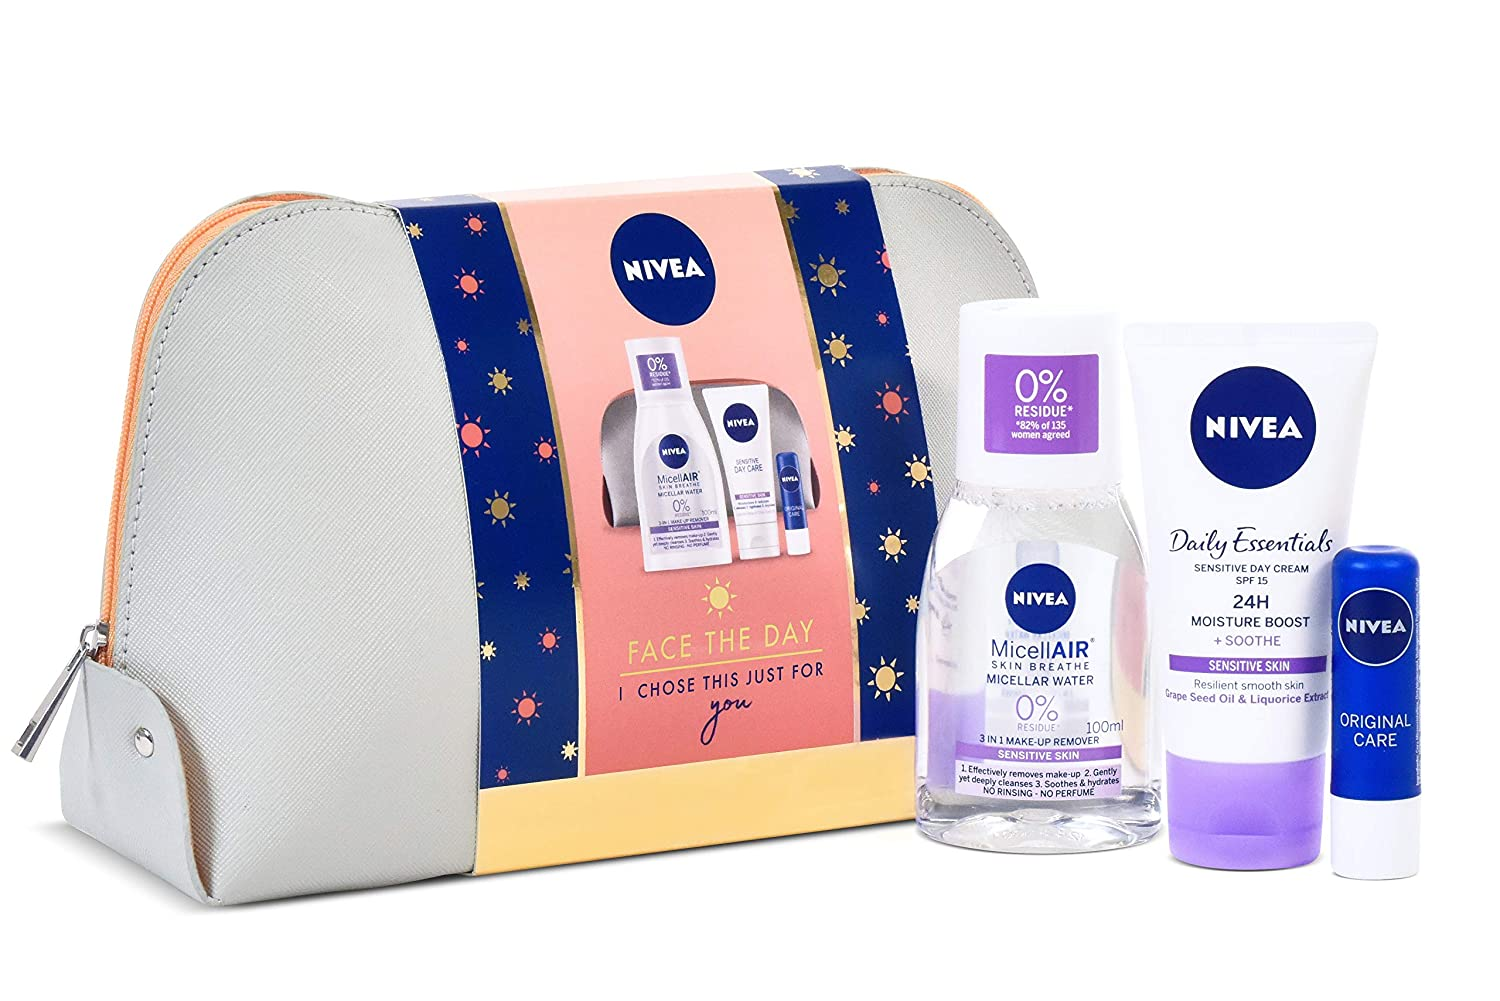 Nivea Gift Set, Face the Day Gift Pack for Her with 3 Items Beiersdorf 72669-03997-00